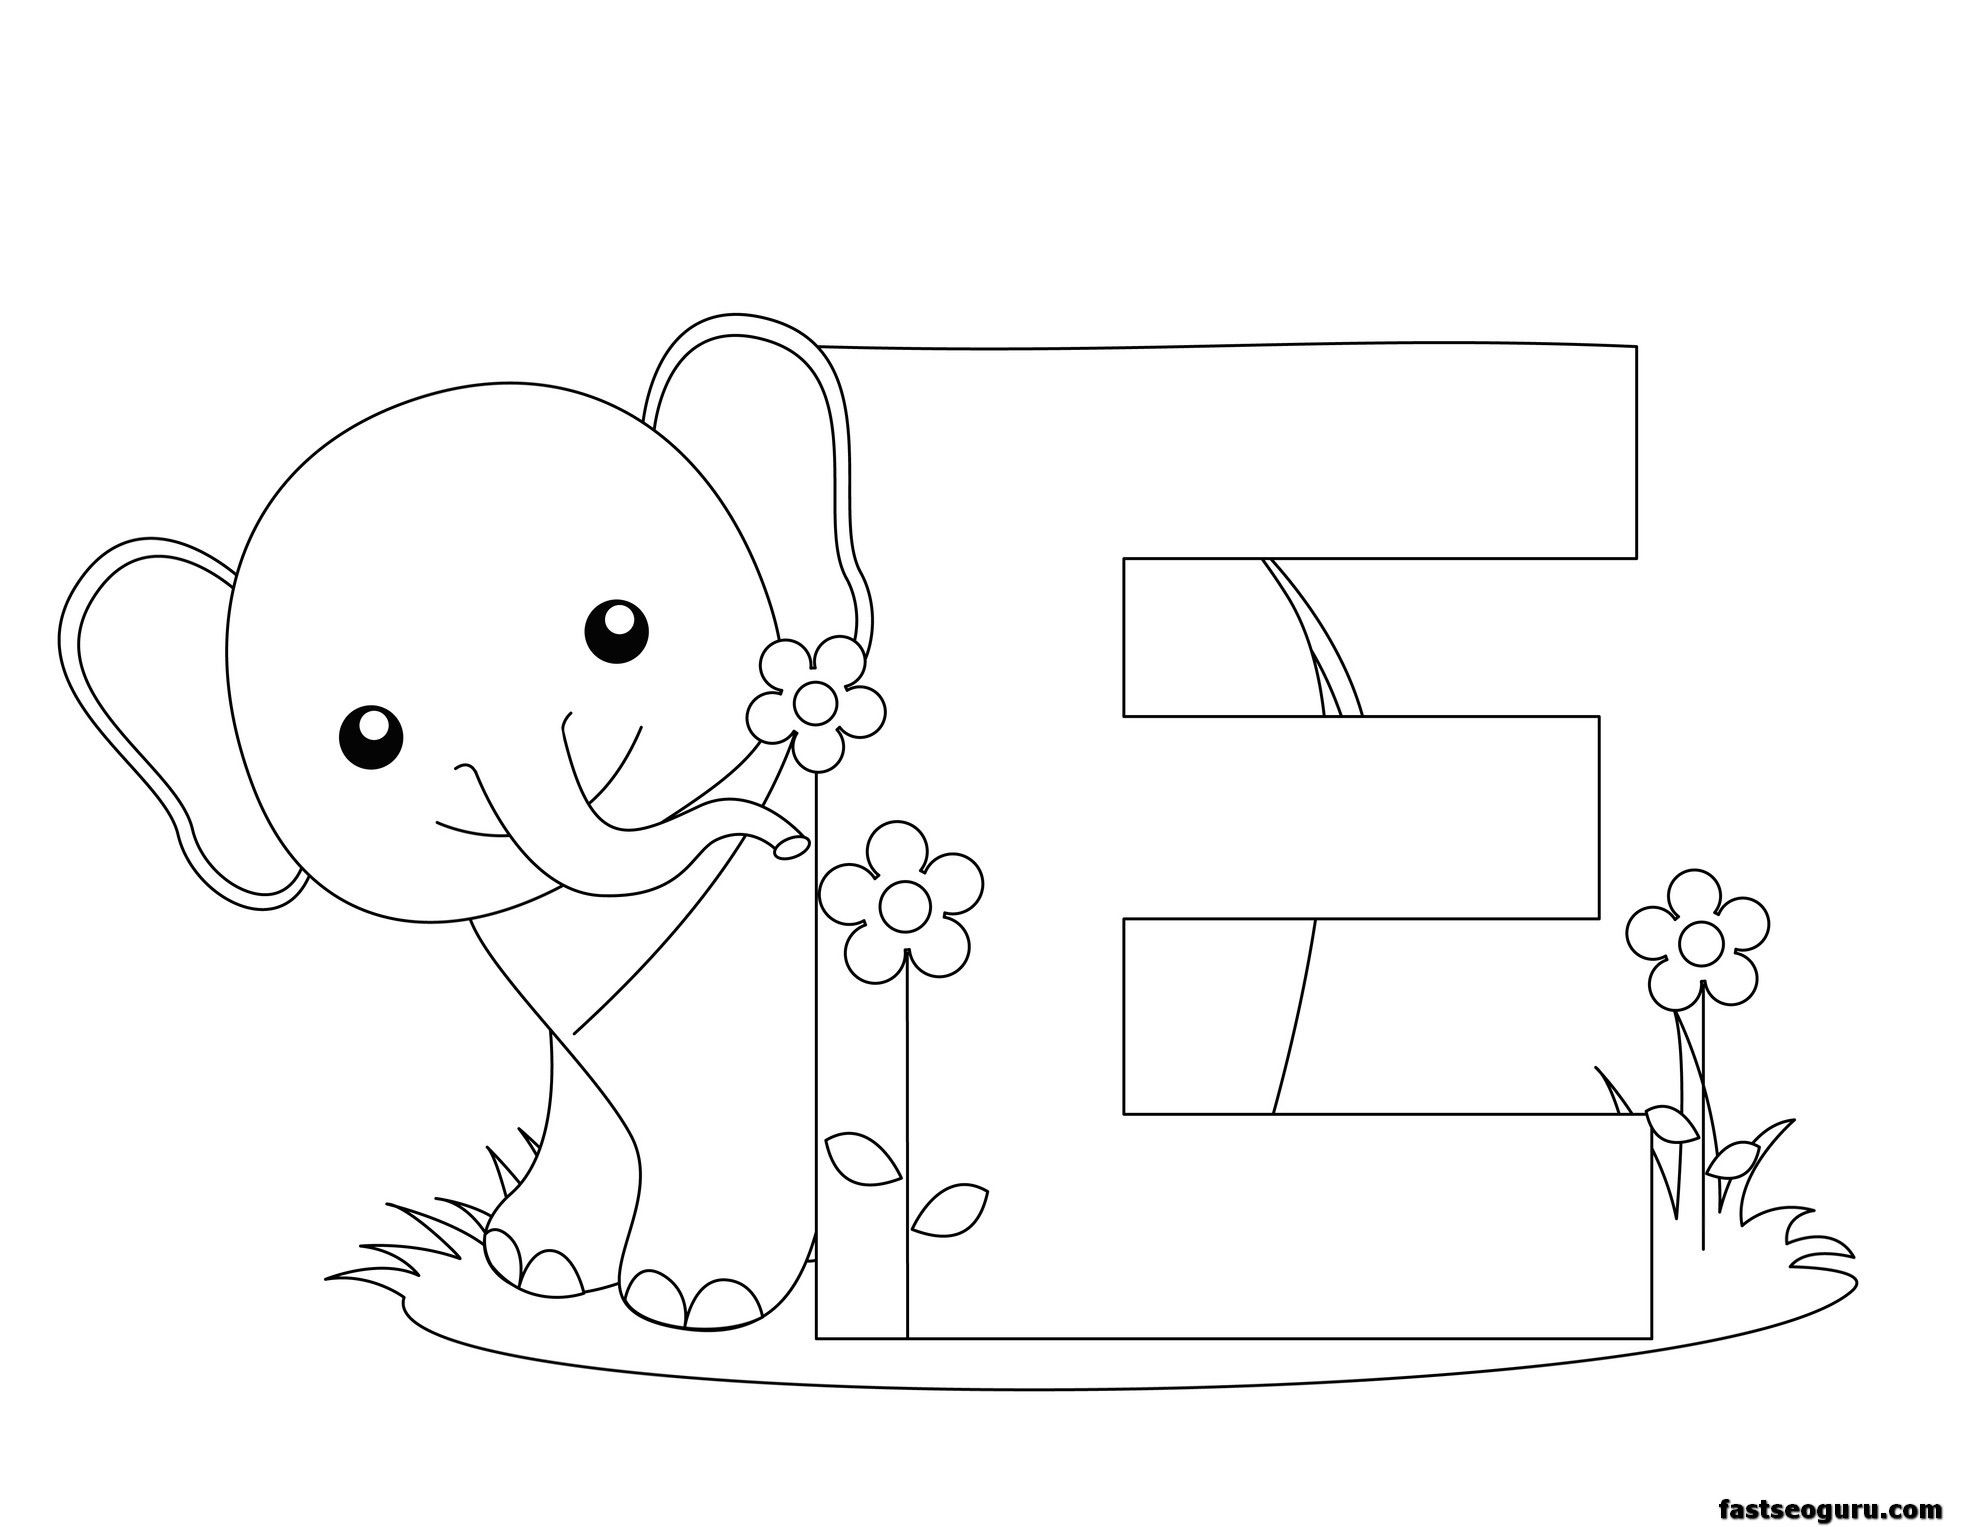 Printable Letter E Homepage Alphabet Printable Animal Alphabet Letter E For Abc Coloring Pages Elephant Coloring Page Abc Coloring